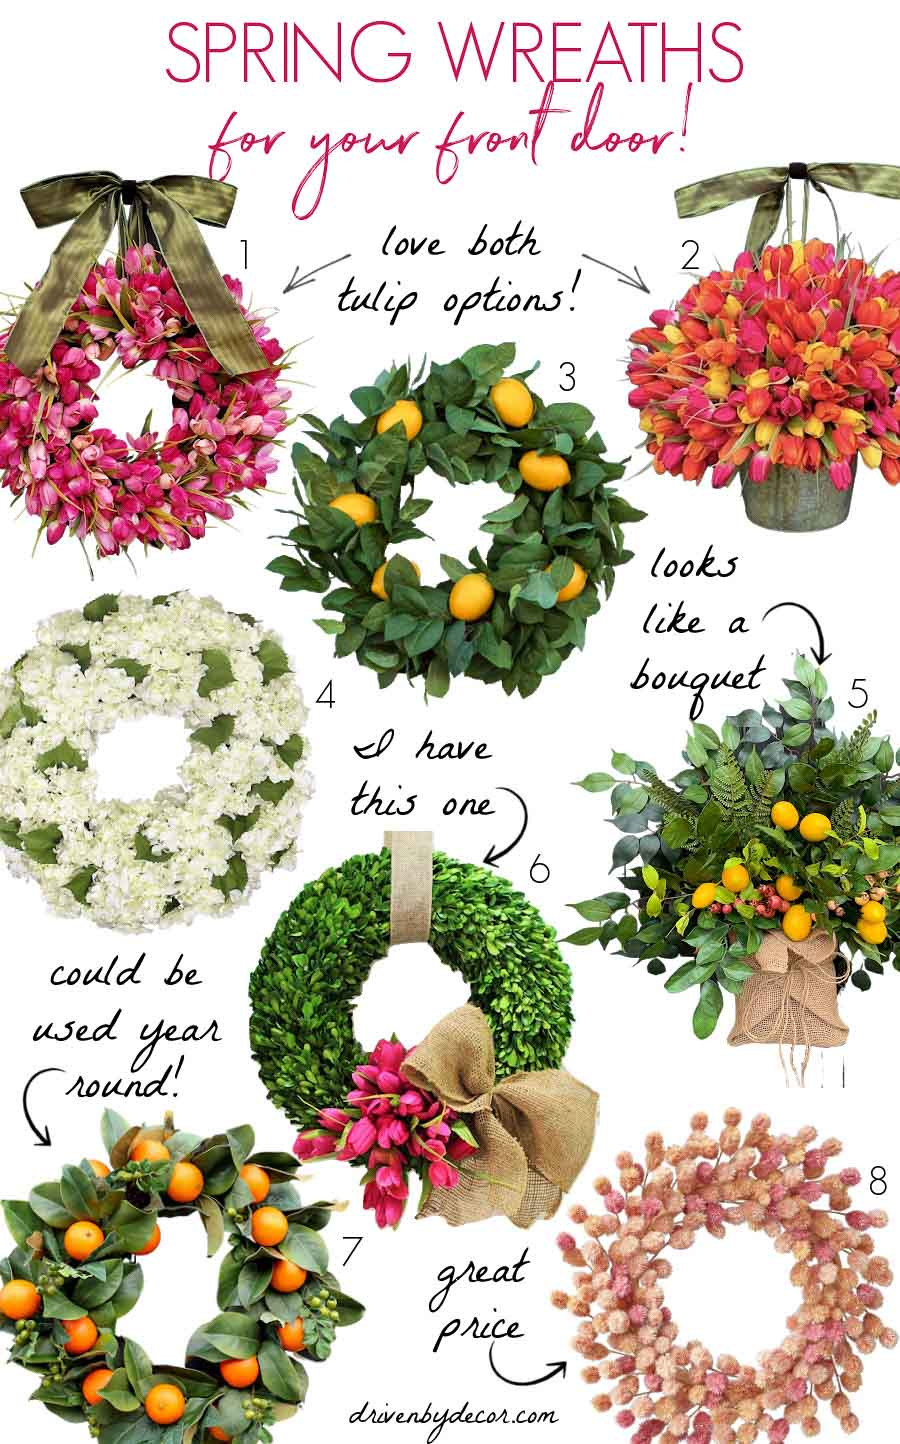 Gorgeous spring wreaths for your front door!